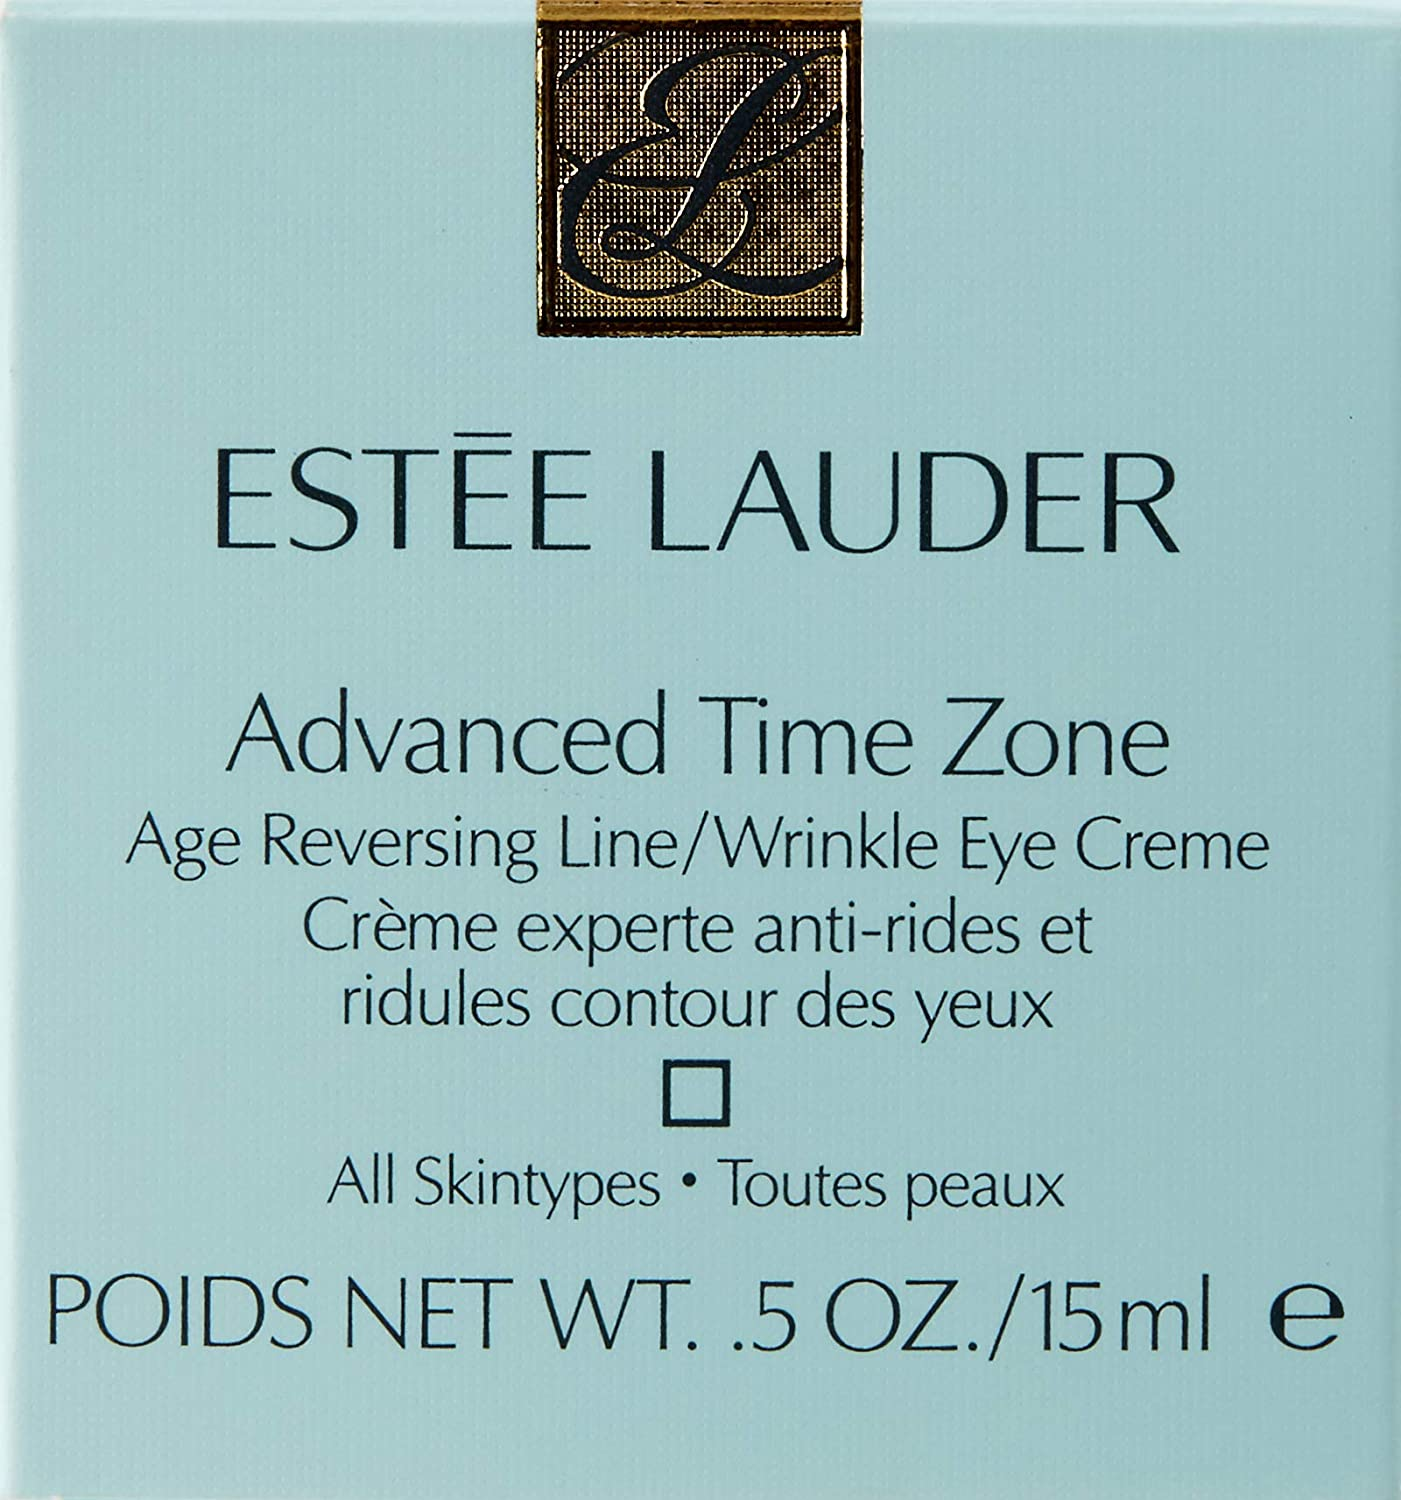 Estee Lauder Time Zone Anti-Line wrinkle Eye Creme Creme For Unisex 0.5 oz